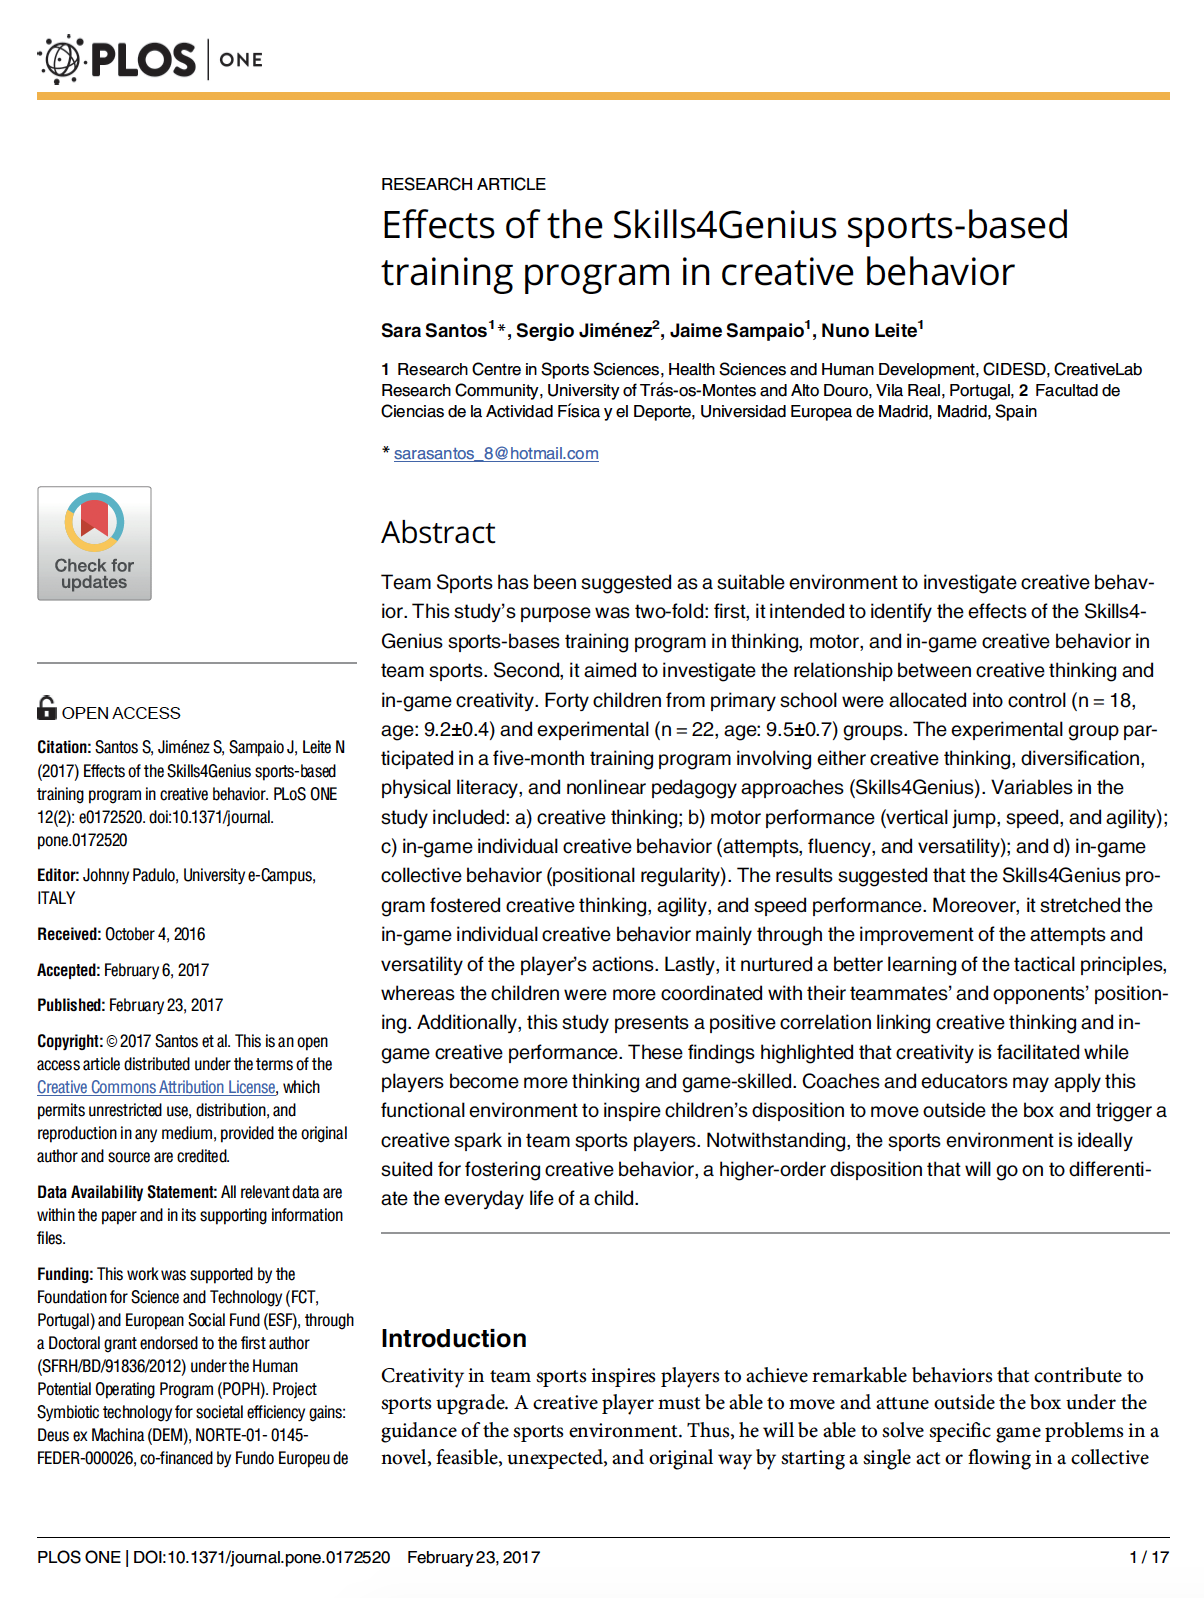 Effects of the Skills4Genius sports-based training program in creative behavior